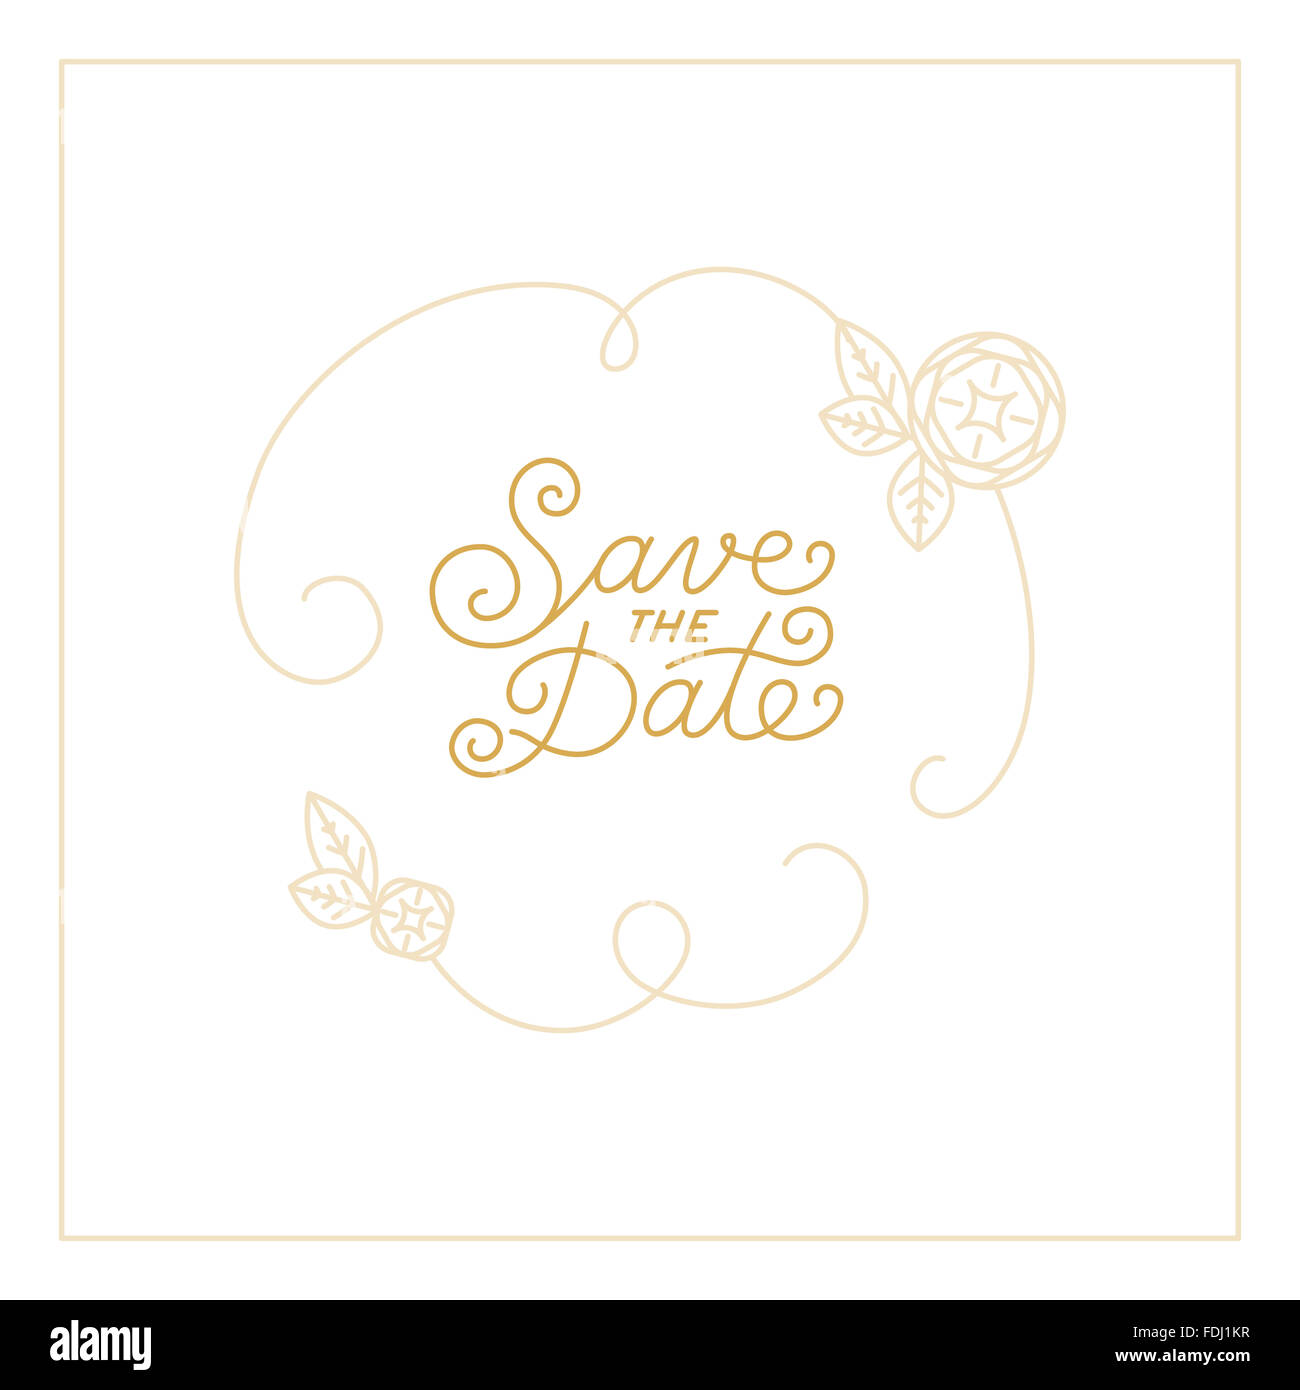 Save the date card design template with hand-lettering and text - wedding invitation design element in trendy linear - Stock Image